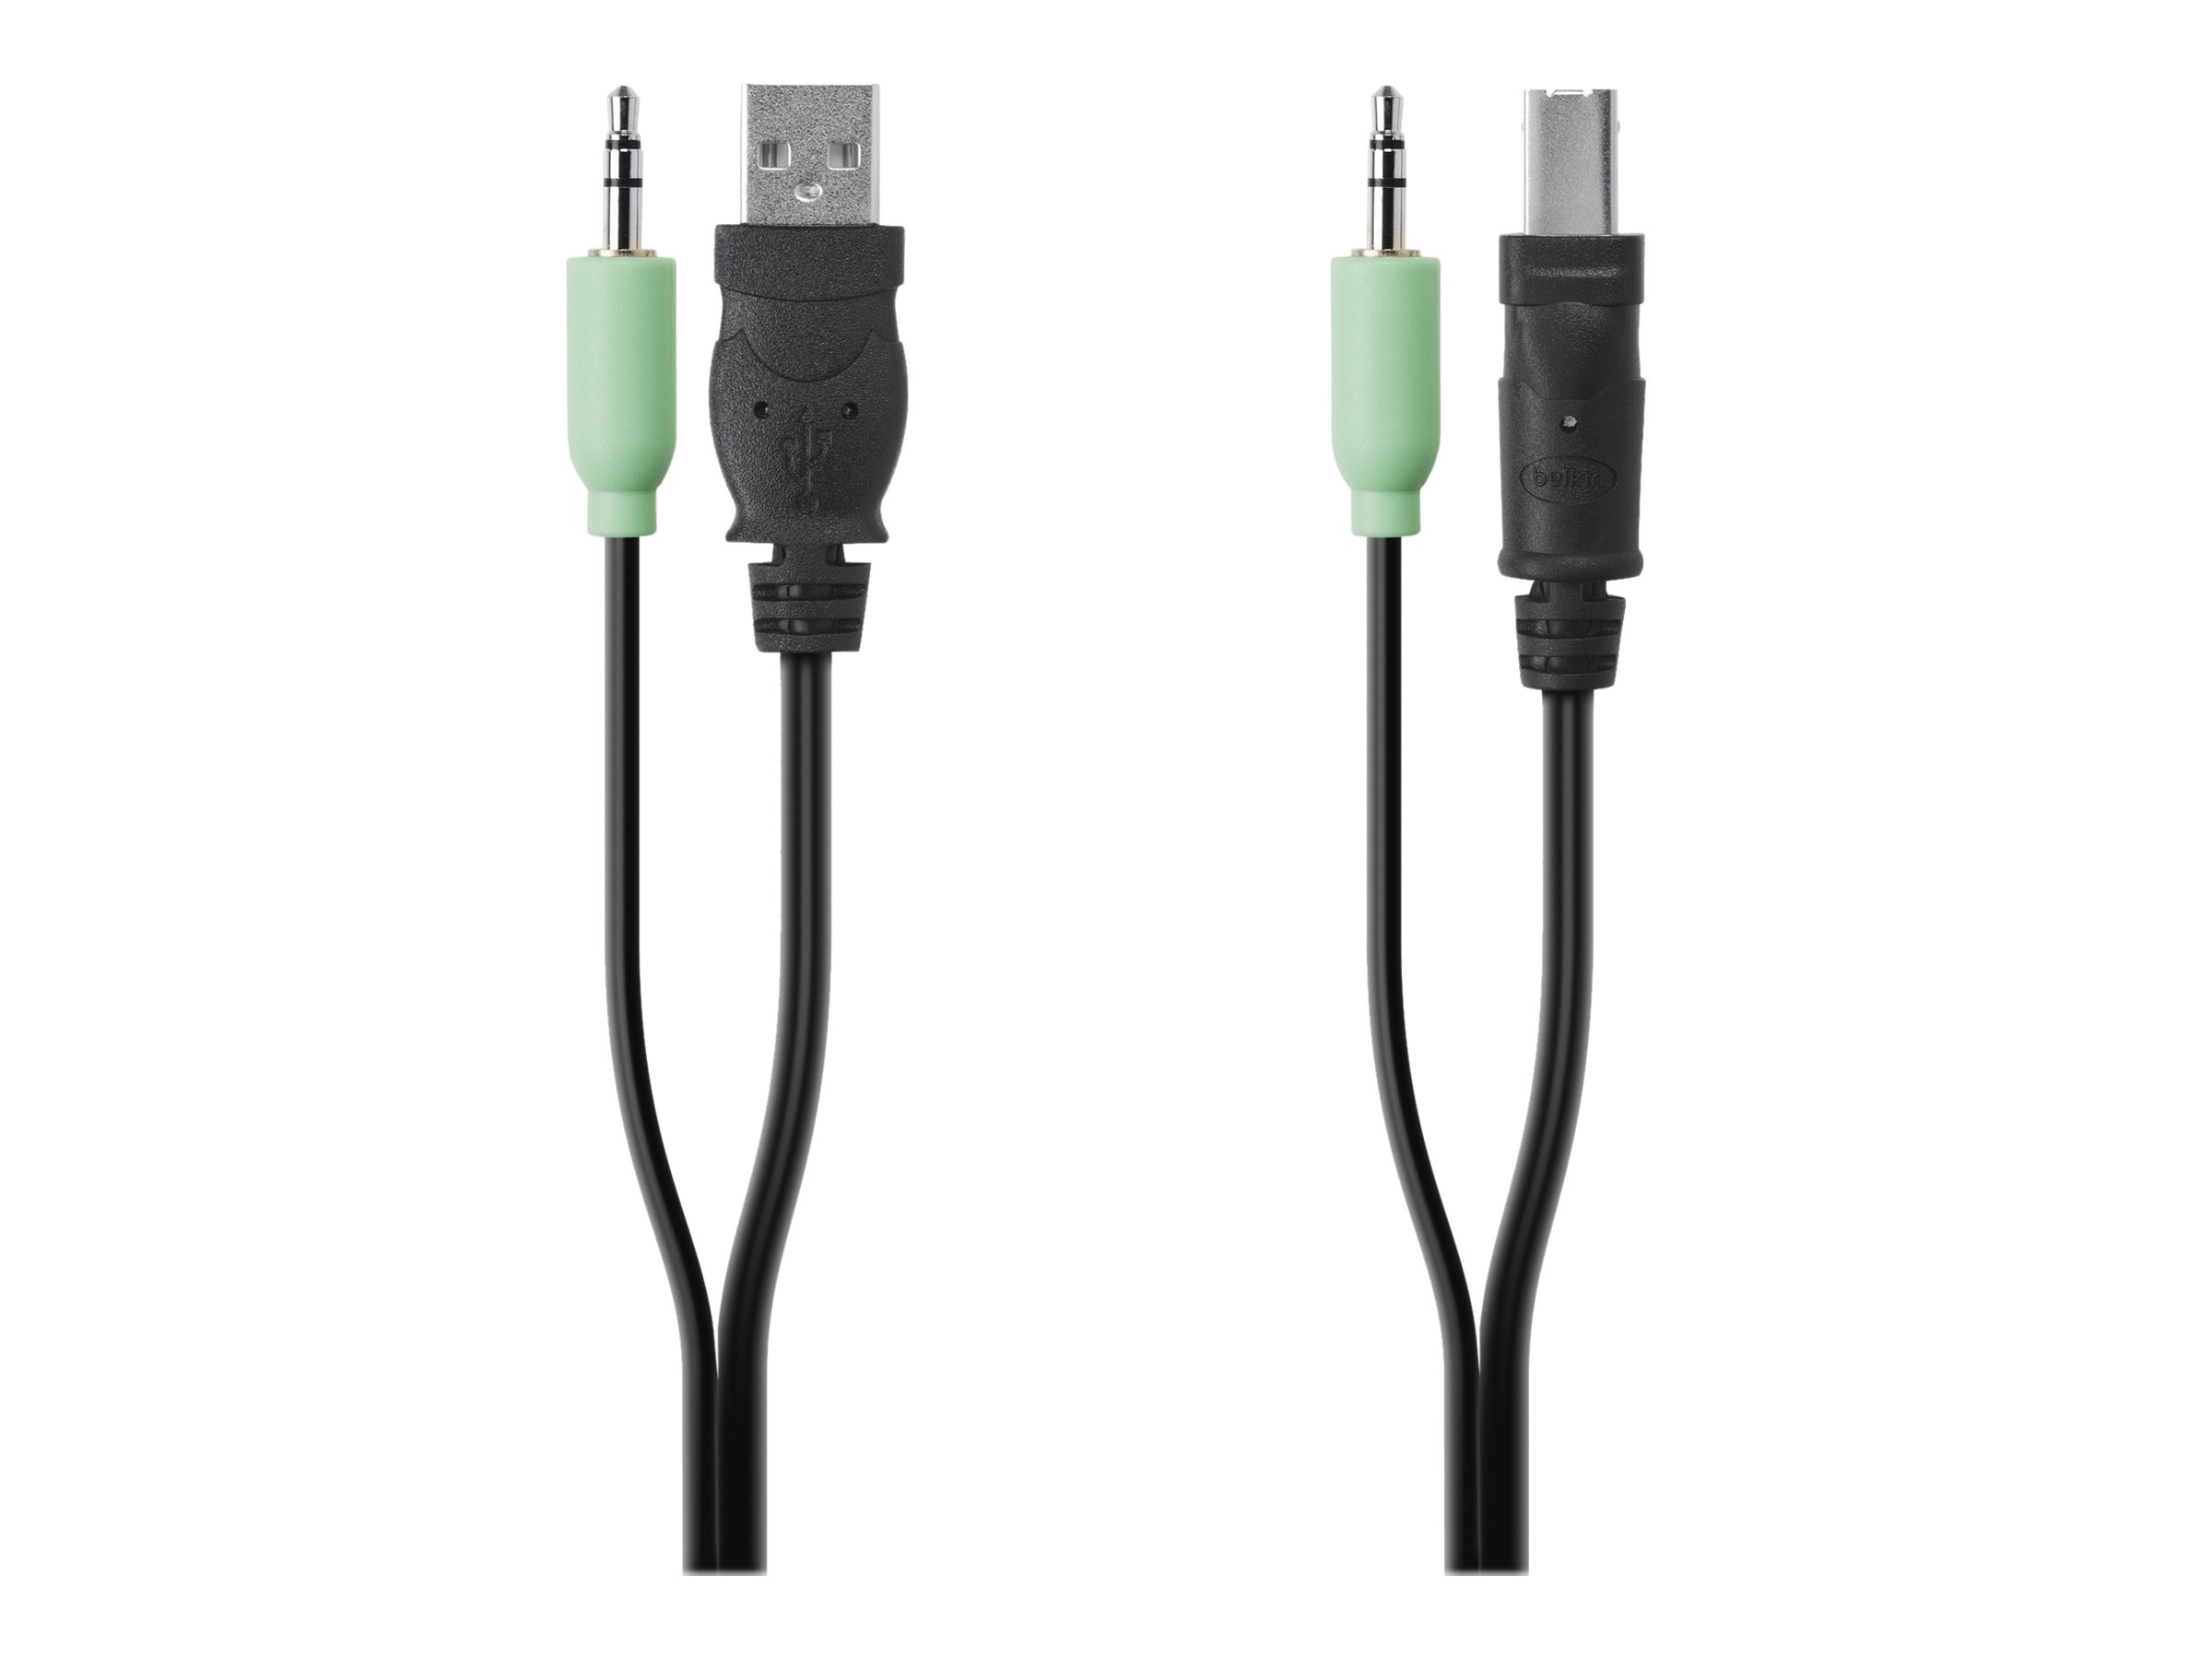 Belkin USB Audio SKVM Cable, USB Type A to USB Type B, 3.5mm Audio, 6ft, F1D9022B06